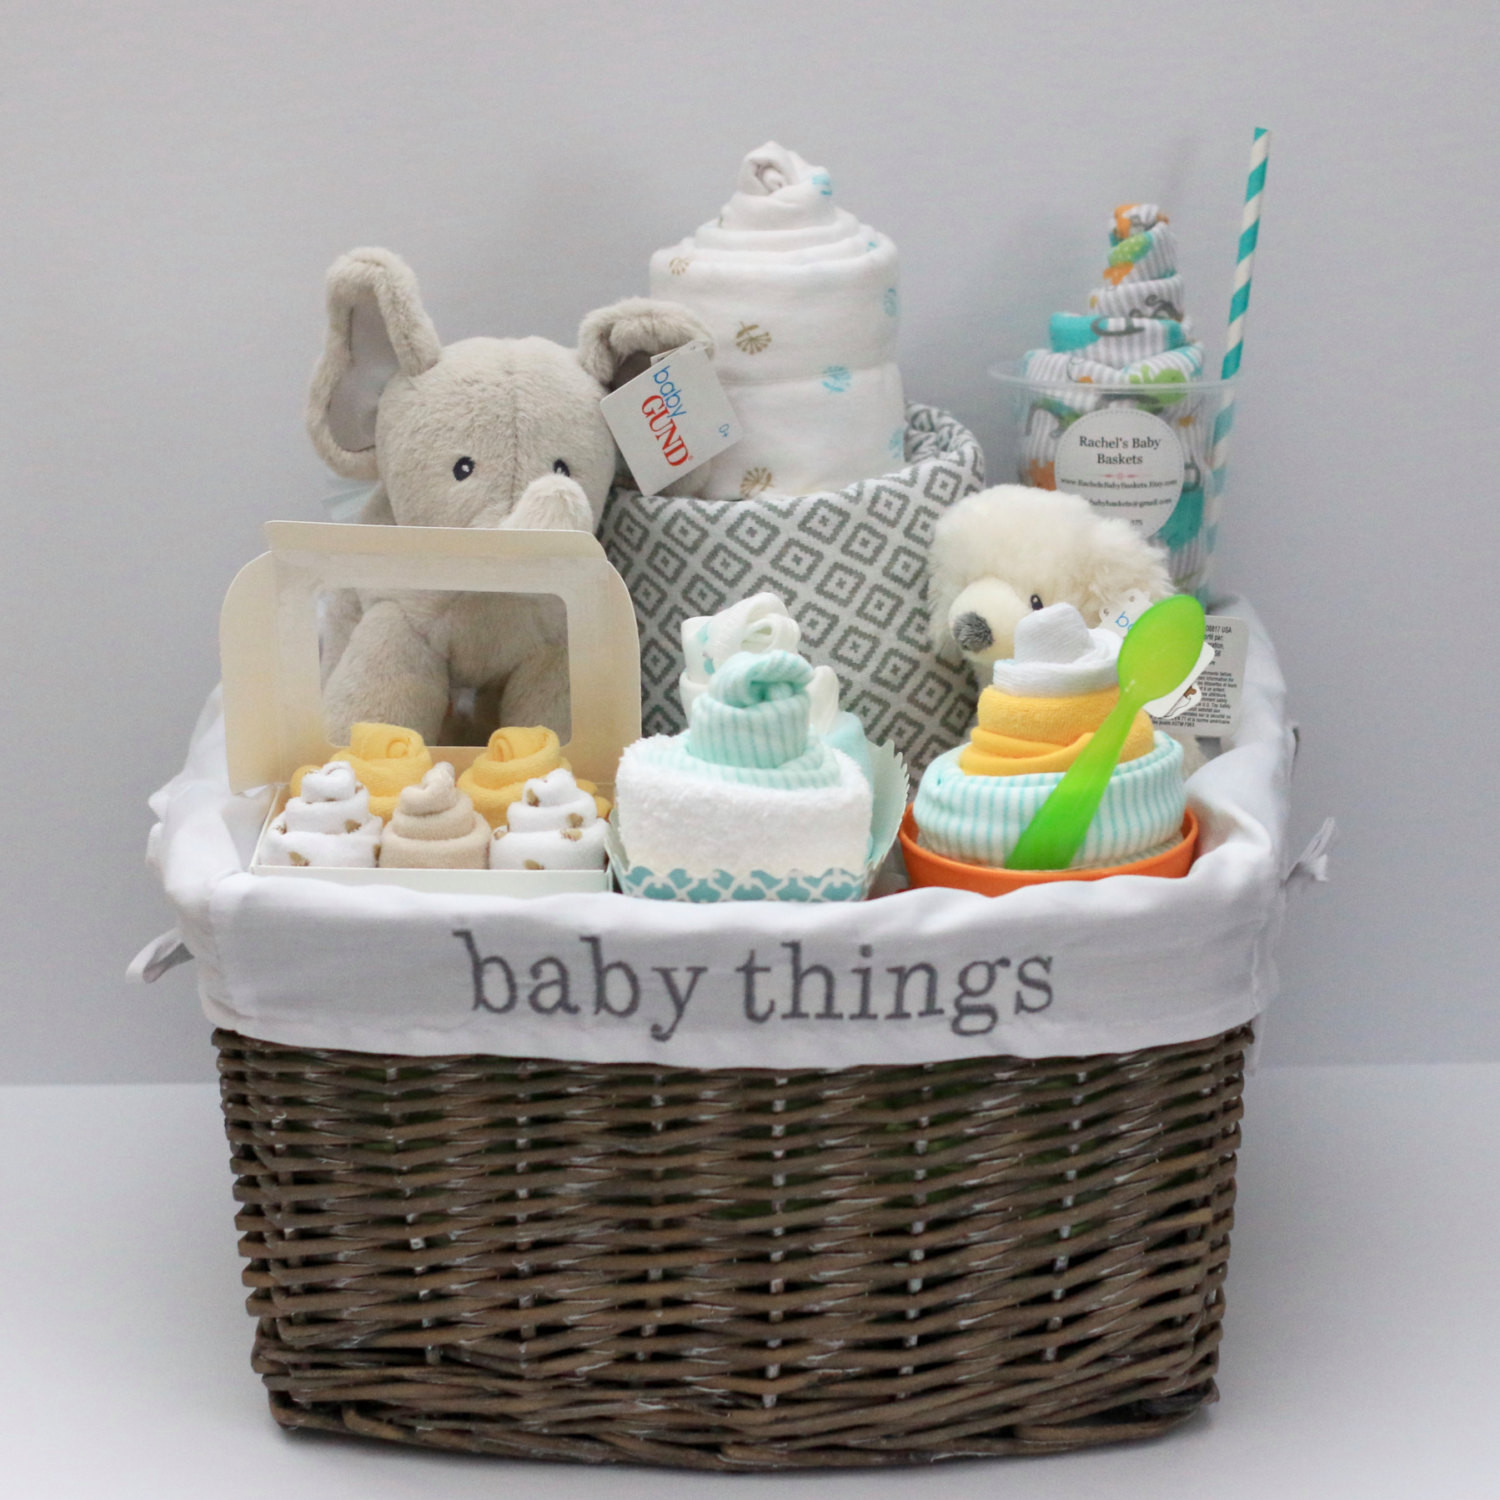 Best ideas about Newborn Baby Gift Ideas . Save or Pin Gender Neutral Baby Gift Basket Baby Shower Gift Unique Baby Now.